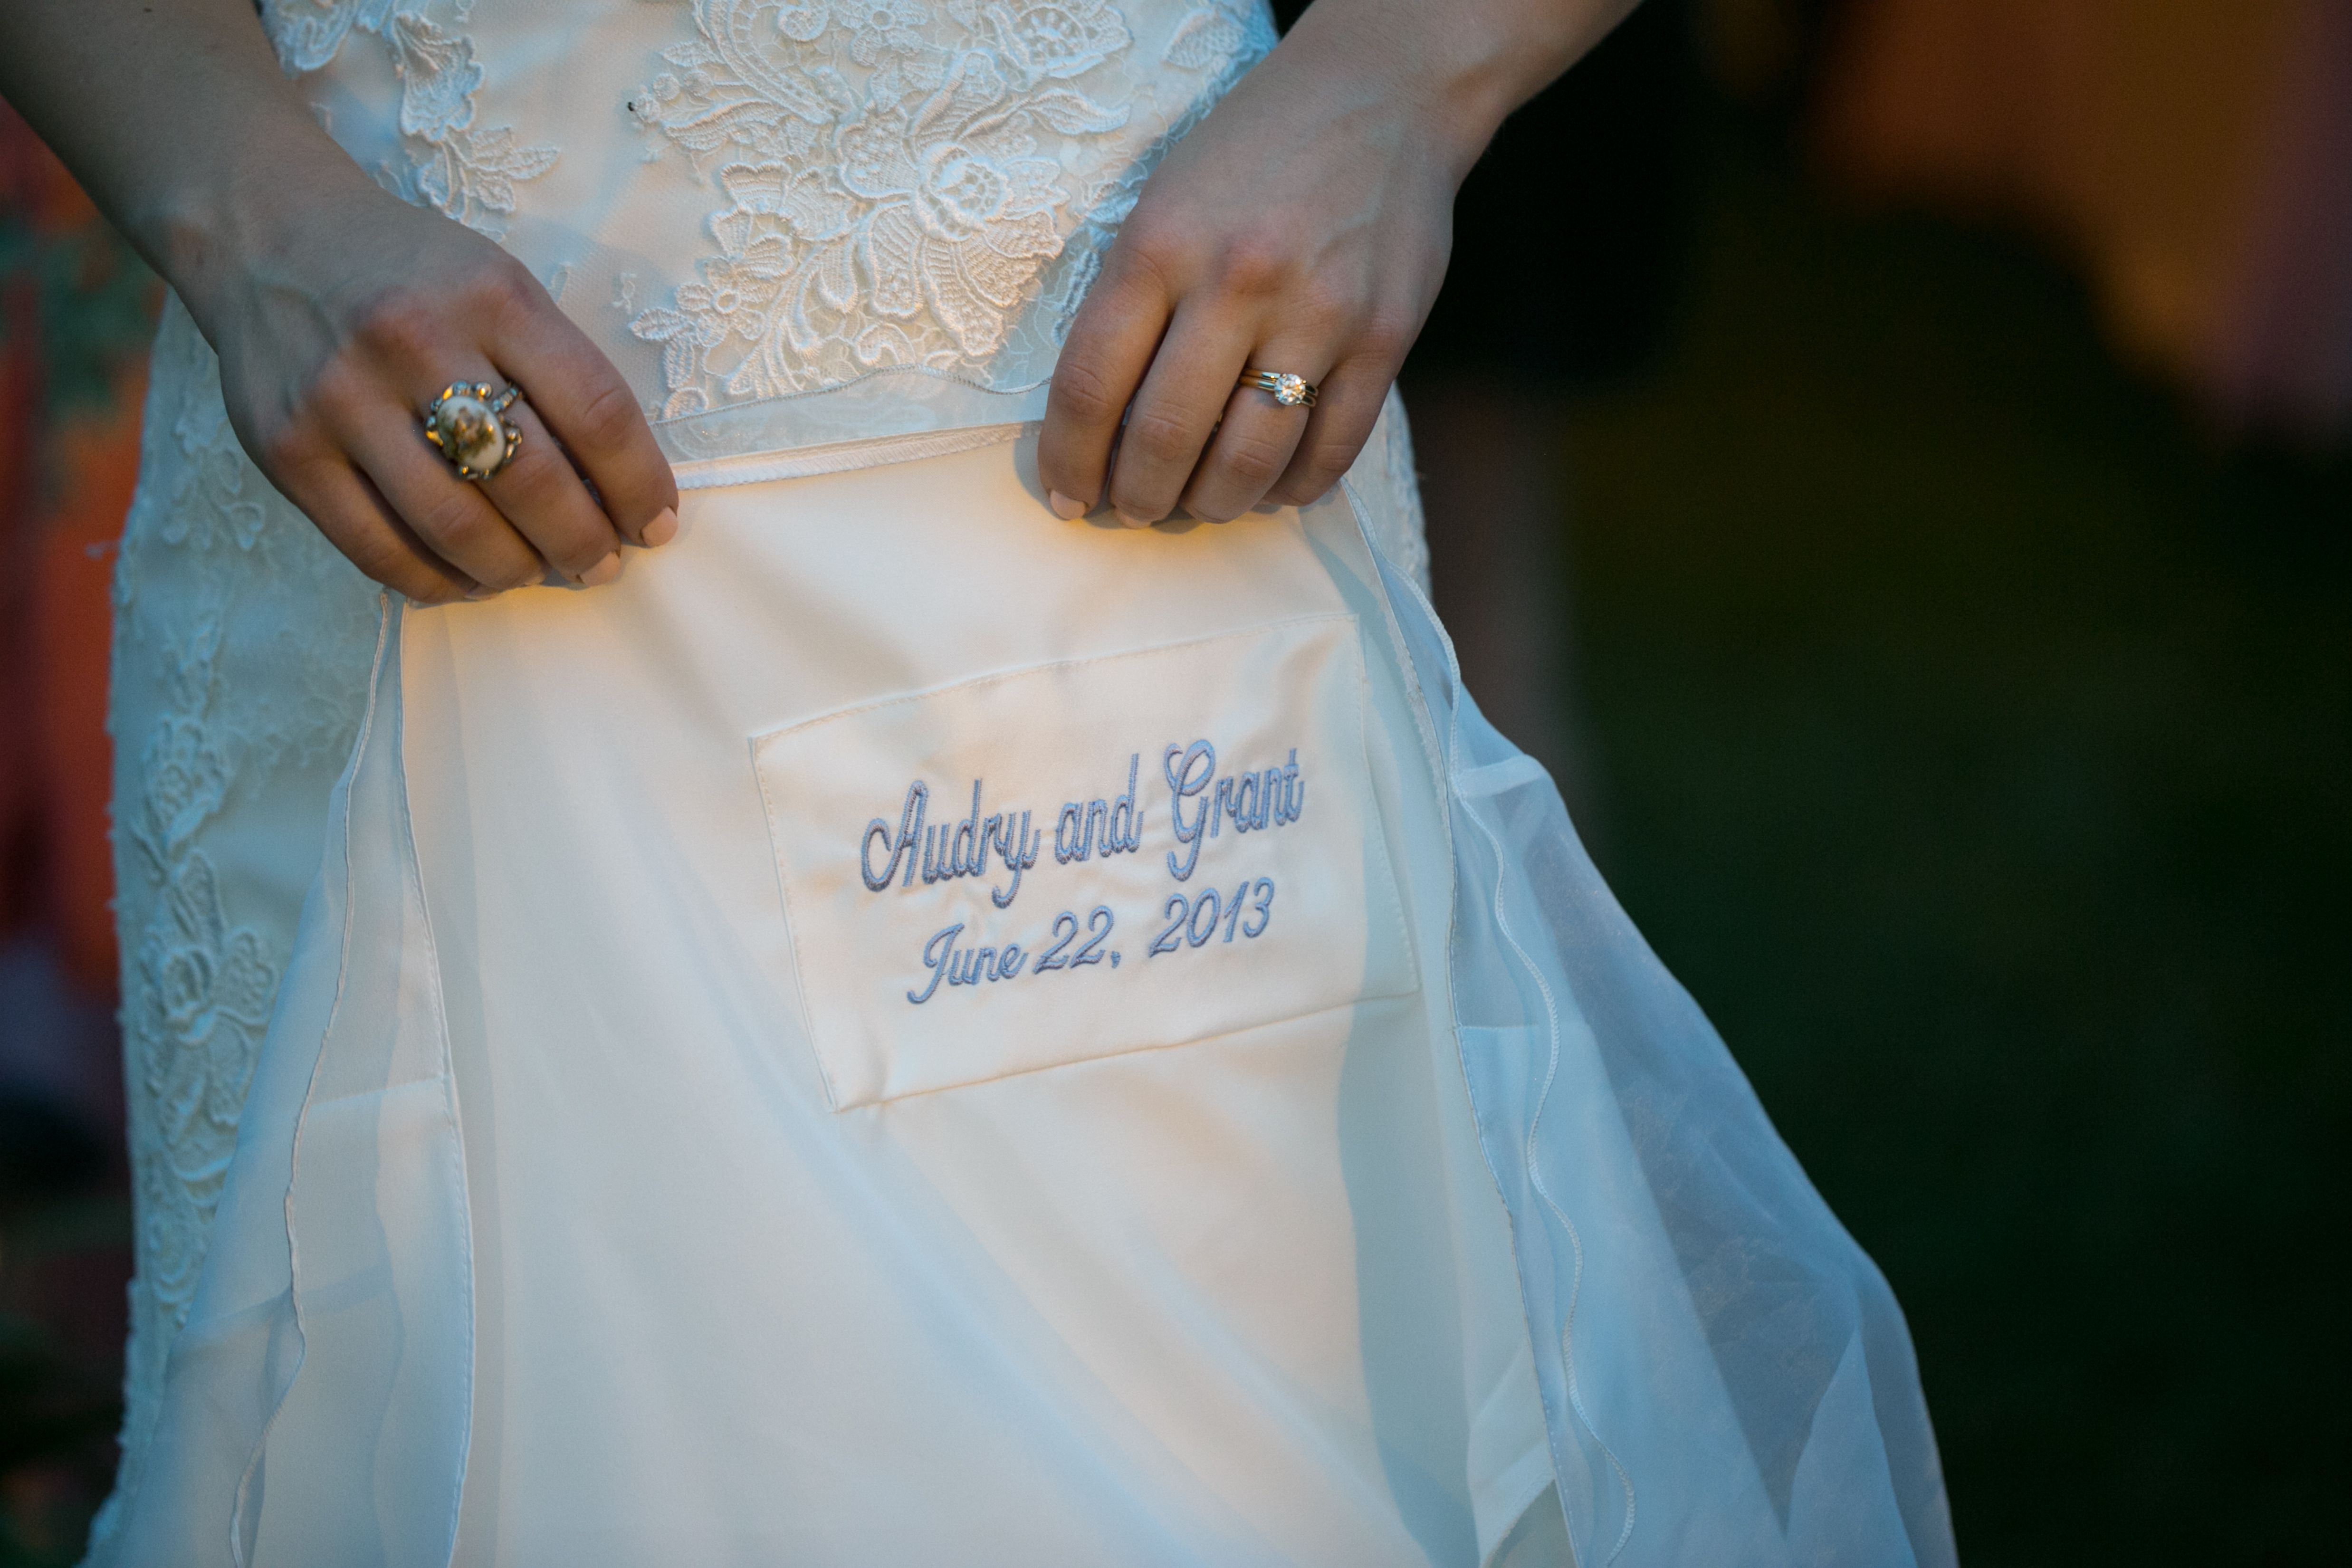 Embroidery under wedding dress, wedding date, something blue | Our ...